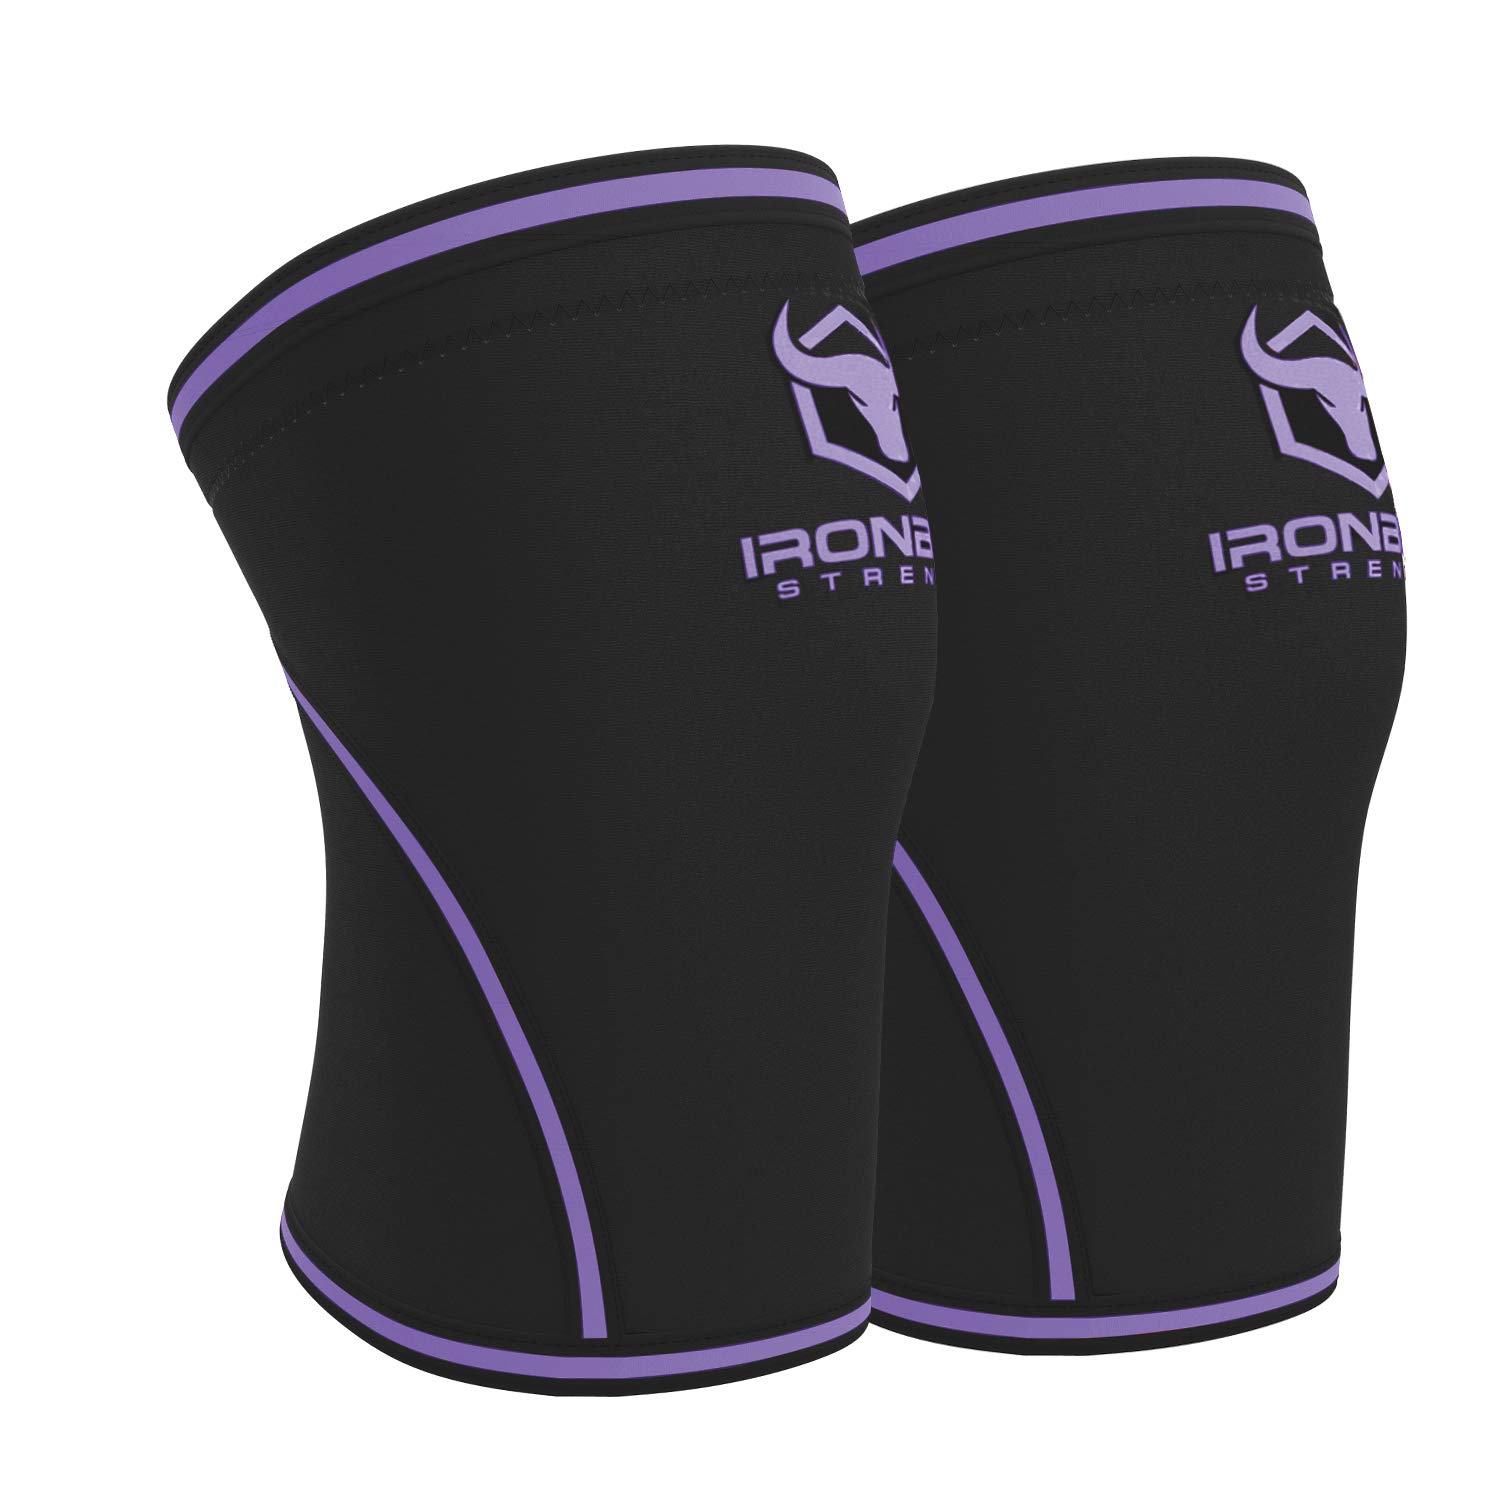 Knee Sleeves 7mm (1 Pair) - High Performance Knee Sleeve Support For Weight Lifting, Cross Training & Powerlifting - Best Knee Wraps & Straps Compression - For Men and Women (Black/Purple, Large) by Iron Bull Strength